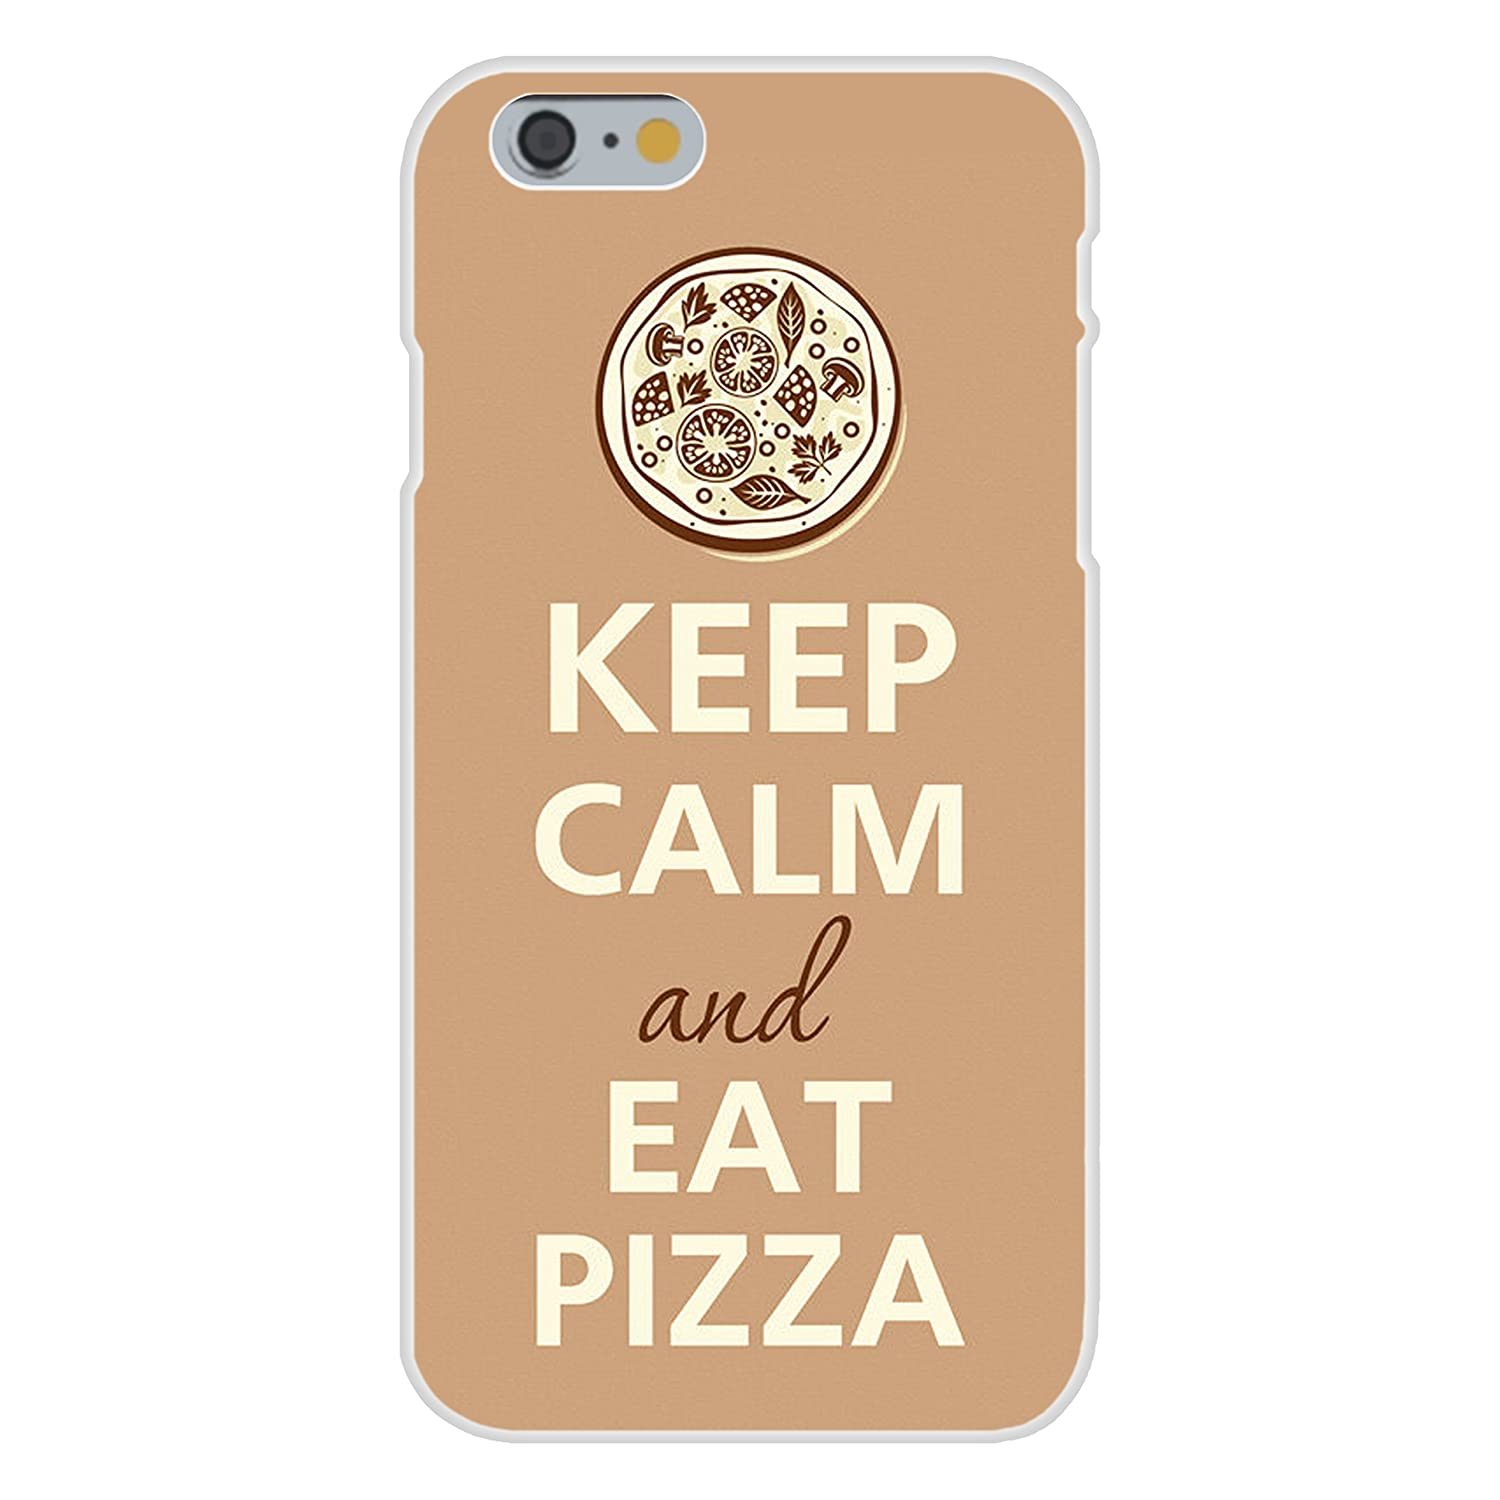 Apple iPhone 6+ (Plus) Custom Case White Plastic Snap On - Keep Calm and Eat Pizza